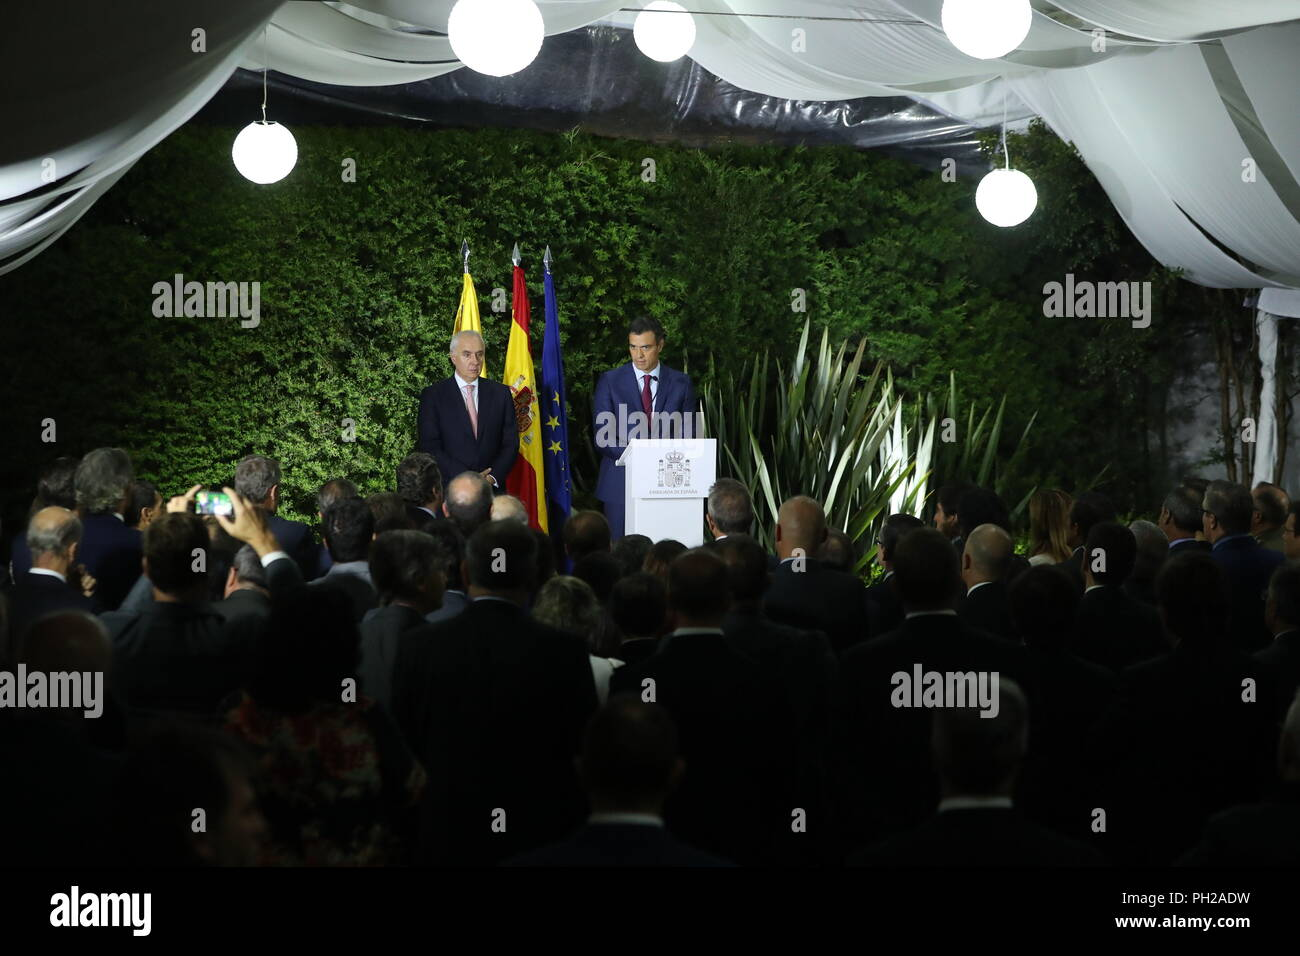 Spanish Prime Minister Pedro Sanchez (C), accompanied by the Ambassador of Spain in Colombia, Pablo Gomez de Olea (L), delivers a speech during a meeting with the Spanish community residing in Colombia held at the Spanish embassy, in Bogota, Colombia, 29 August 2018. Sanchez arrived in Bogota today to meet tomorrow with the Colombian President Ivan Duque, on the third stop of his Latin American tour. EFE/J.J. Guillen - Stock Image